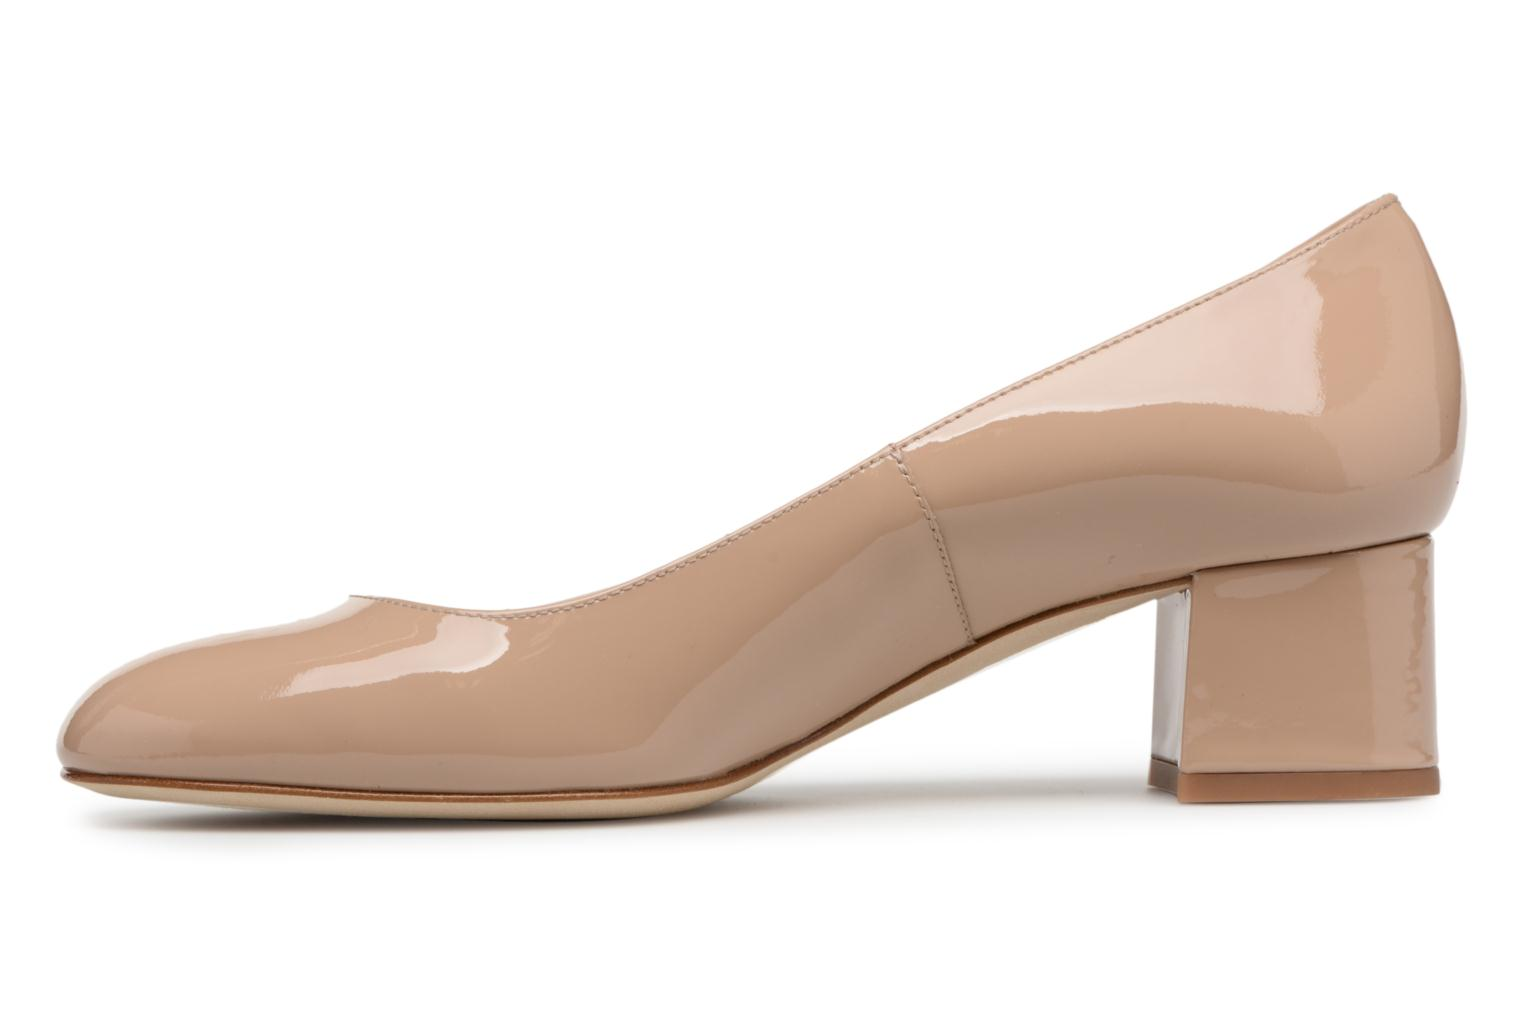 Maisy Beige-Trench Patent